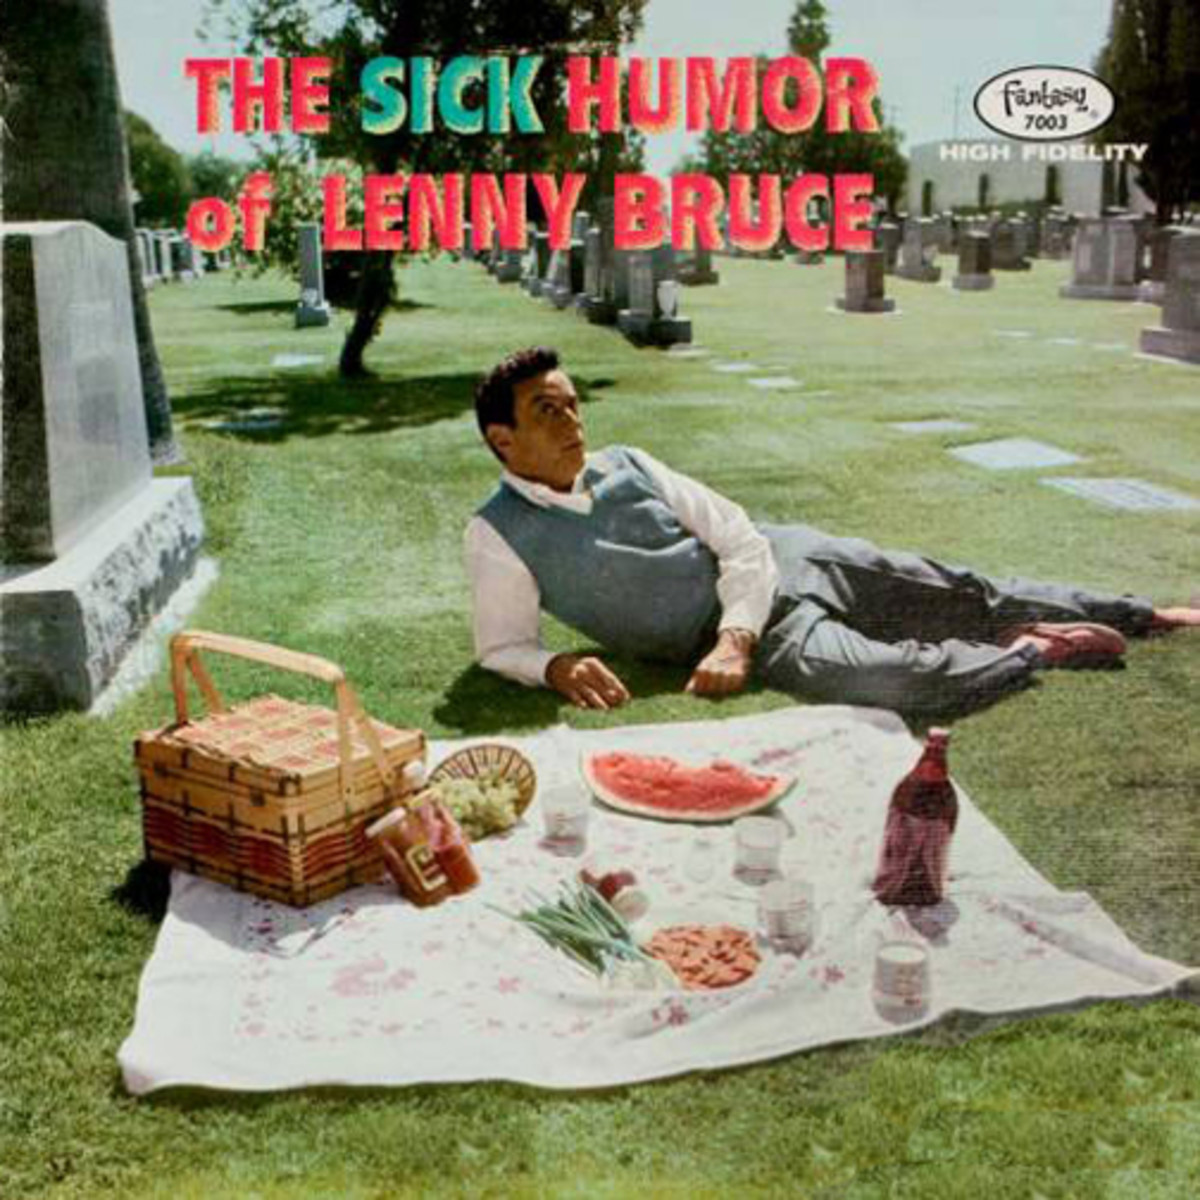 "Lenny Bruce ""The Sick Humor of Lenny Bruce"" Fantasy Records 7003 12"" LP Record, US Pressing (1958) Red Vinyl Record"